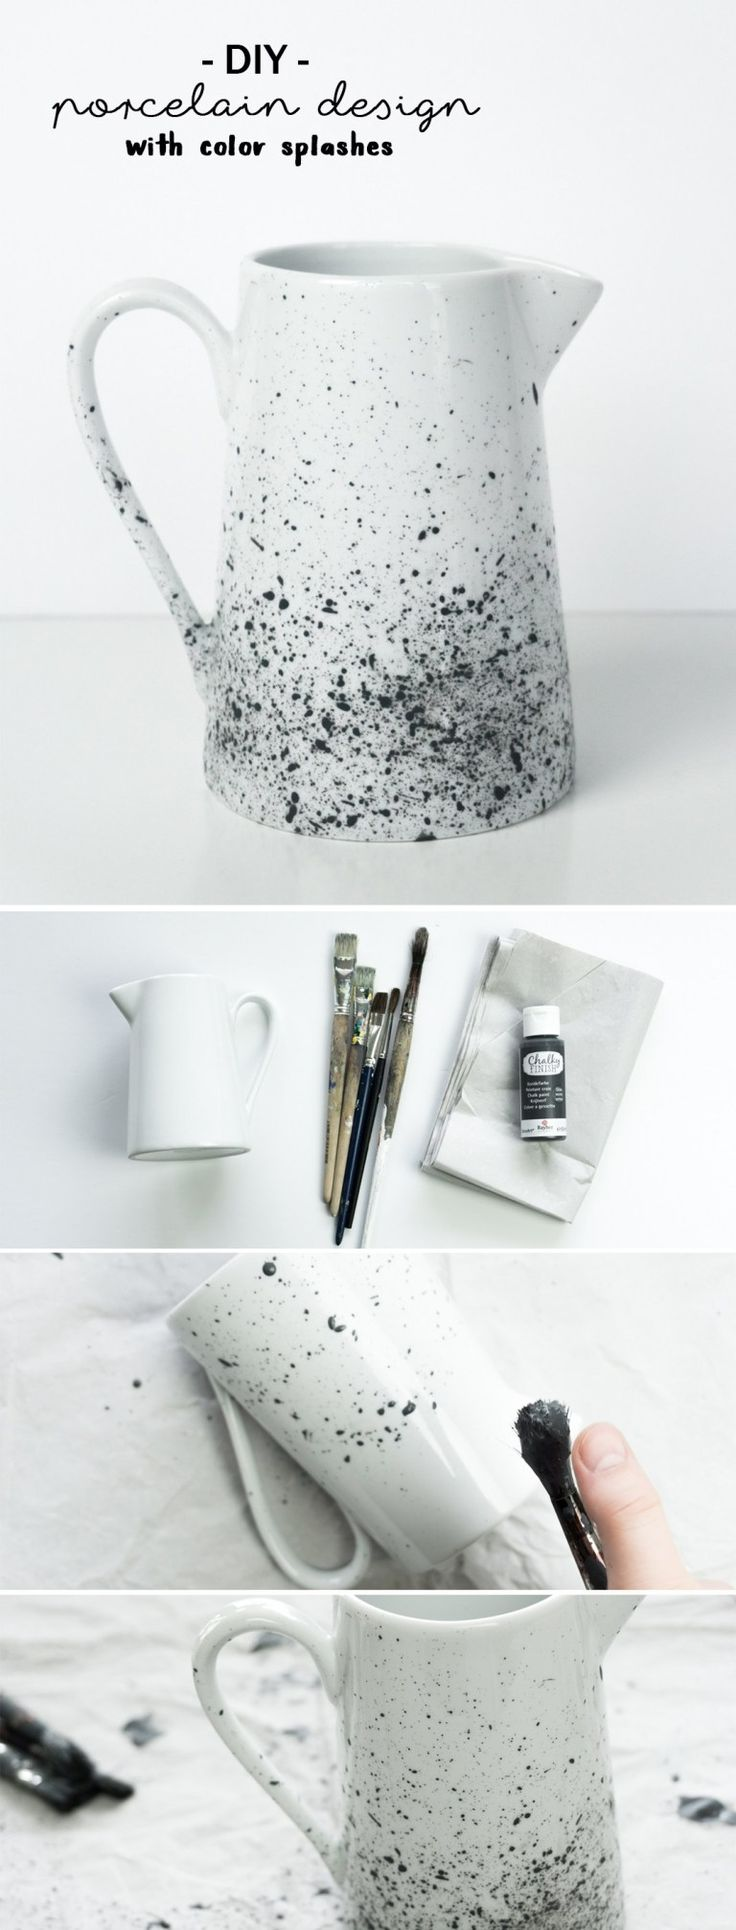 schereleimpapier DIY und Upcycling Blog aus Berlin – kreative Tutorials für Ges…  # Keramik